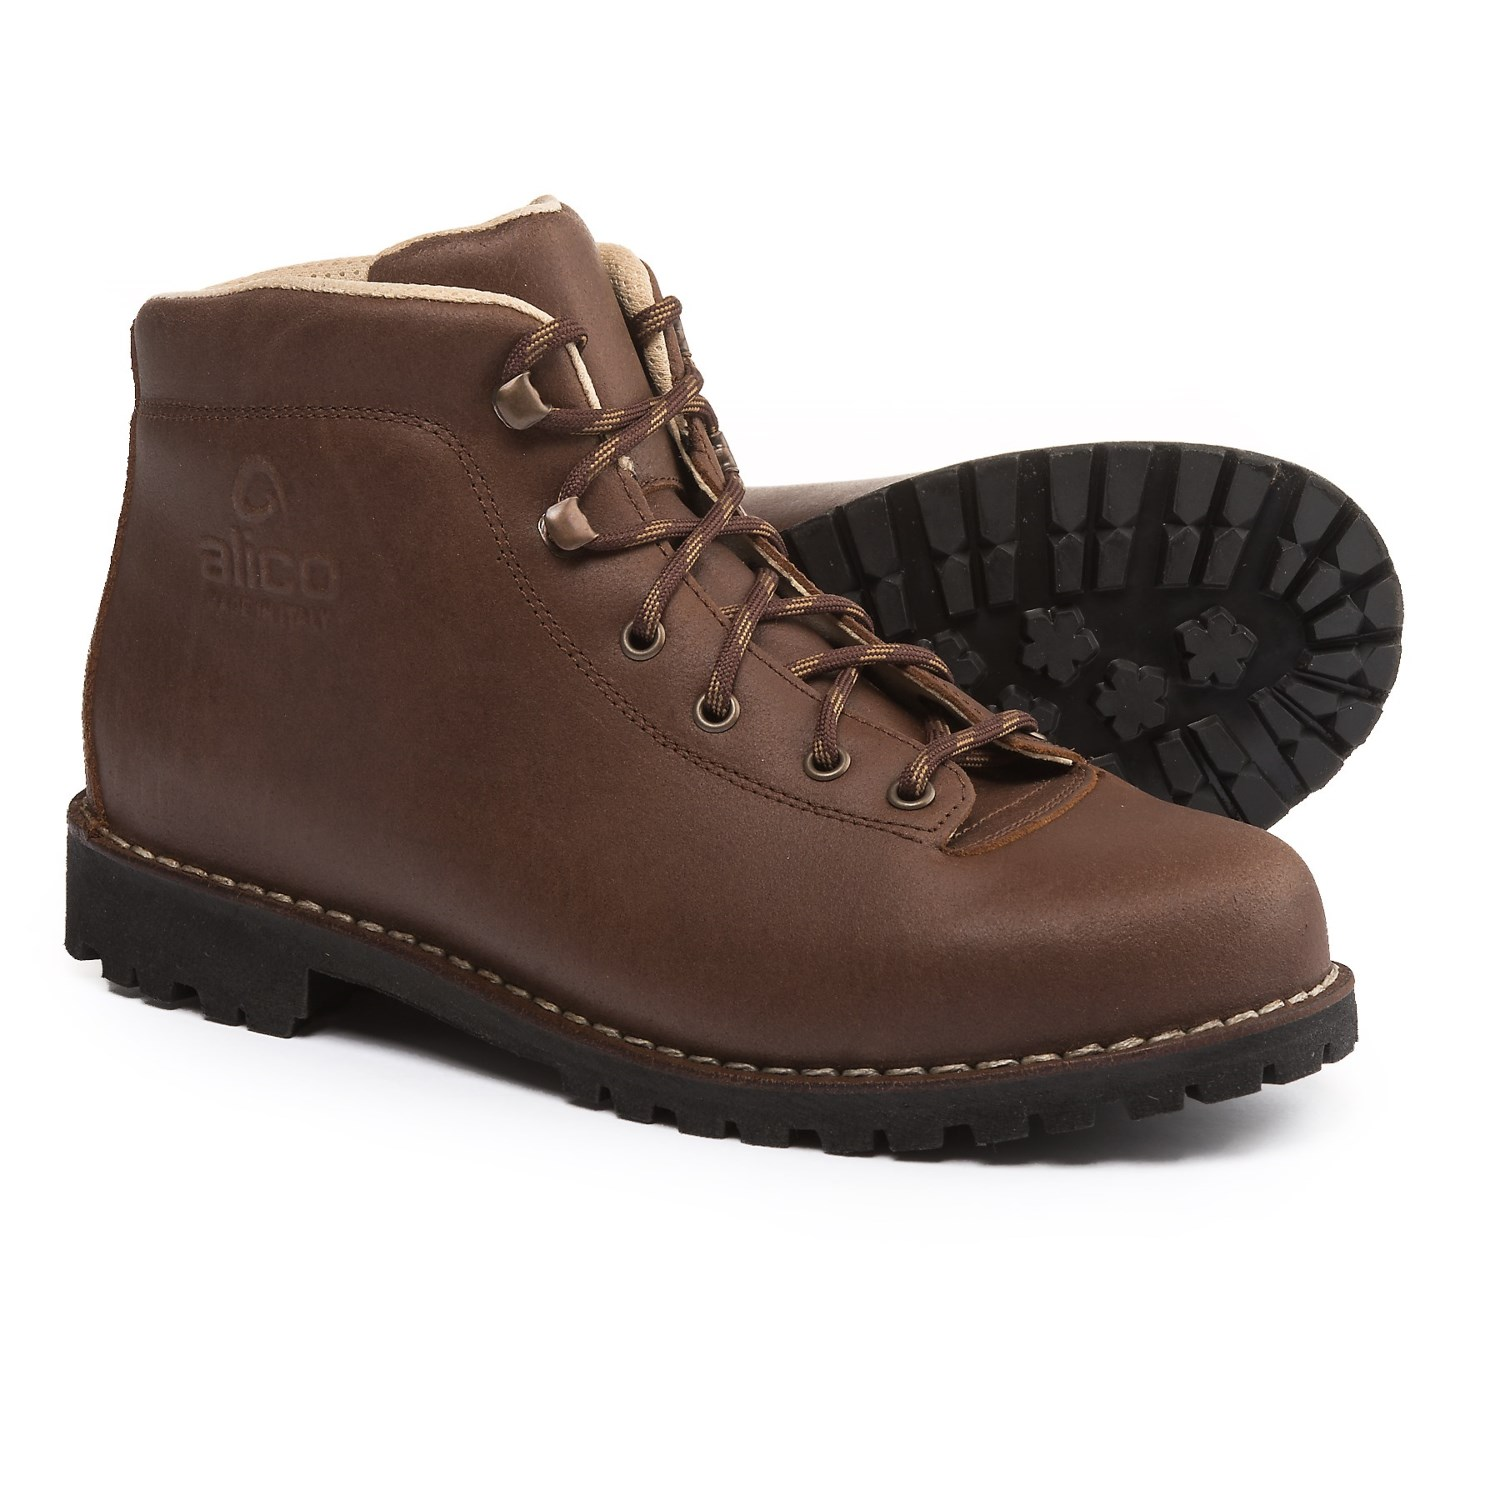 Alico Made in Italy Belluno Hiking Boots - Leather (For Men) in Dark Brown 9b244174d10